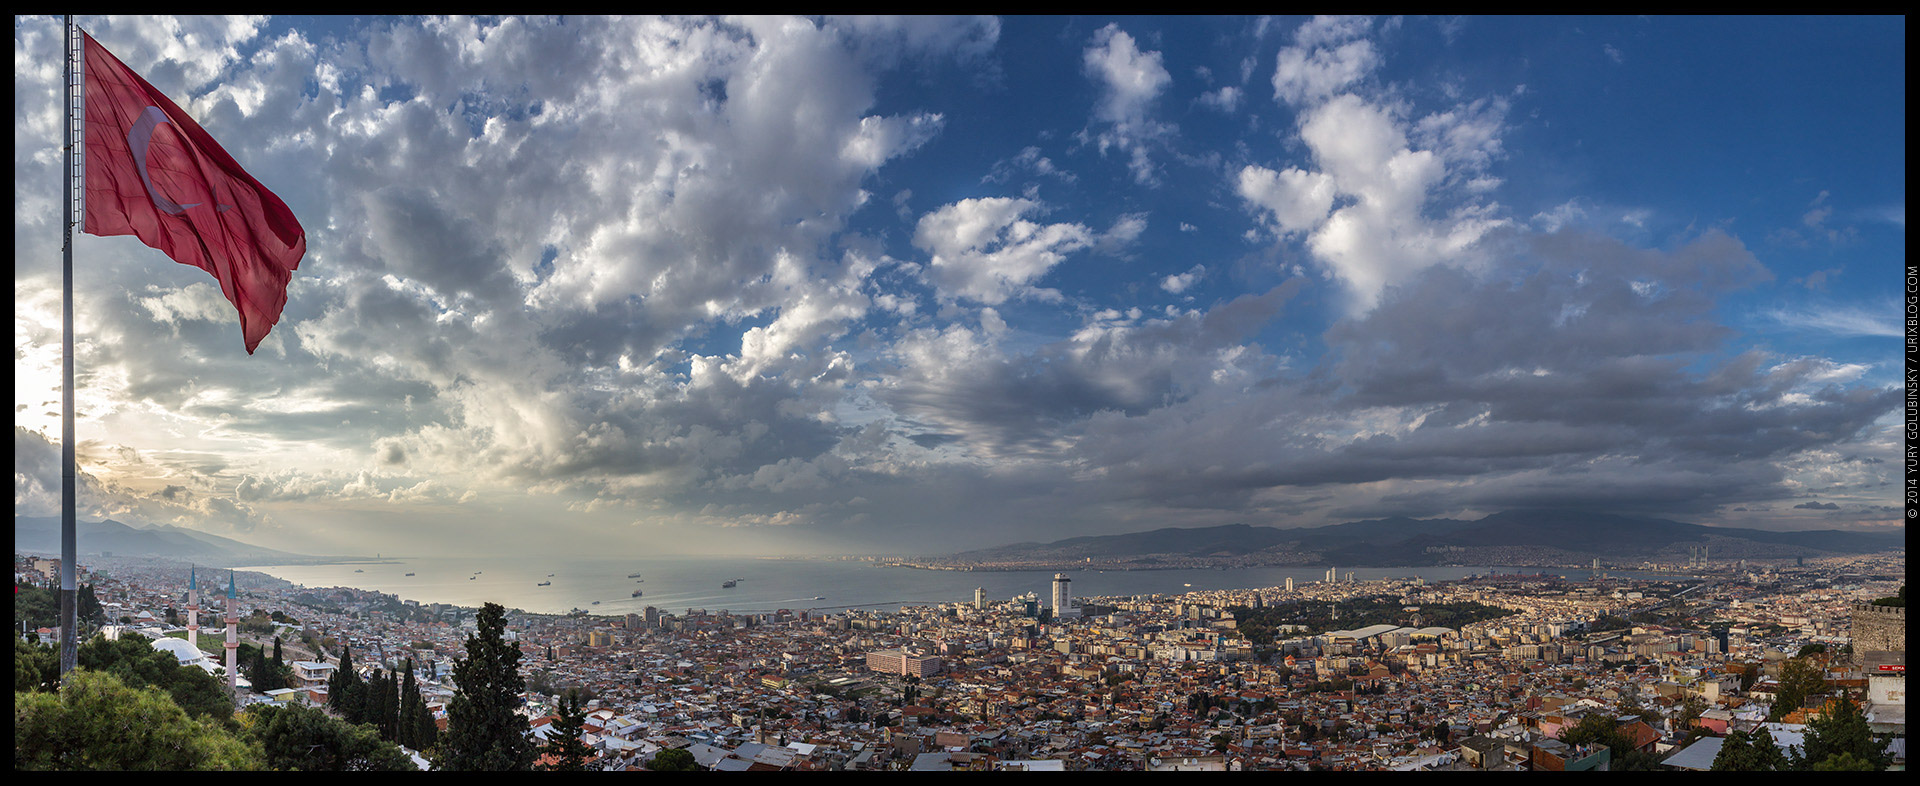 2014, Izmir, Kadifekale, castle, fortress, hill, Turkey, panorama, horizon, Aegean sea, ships, bay, red, flag, city